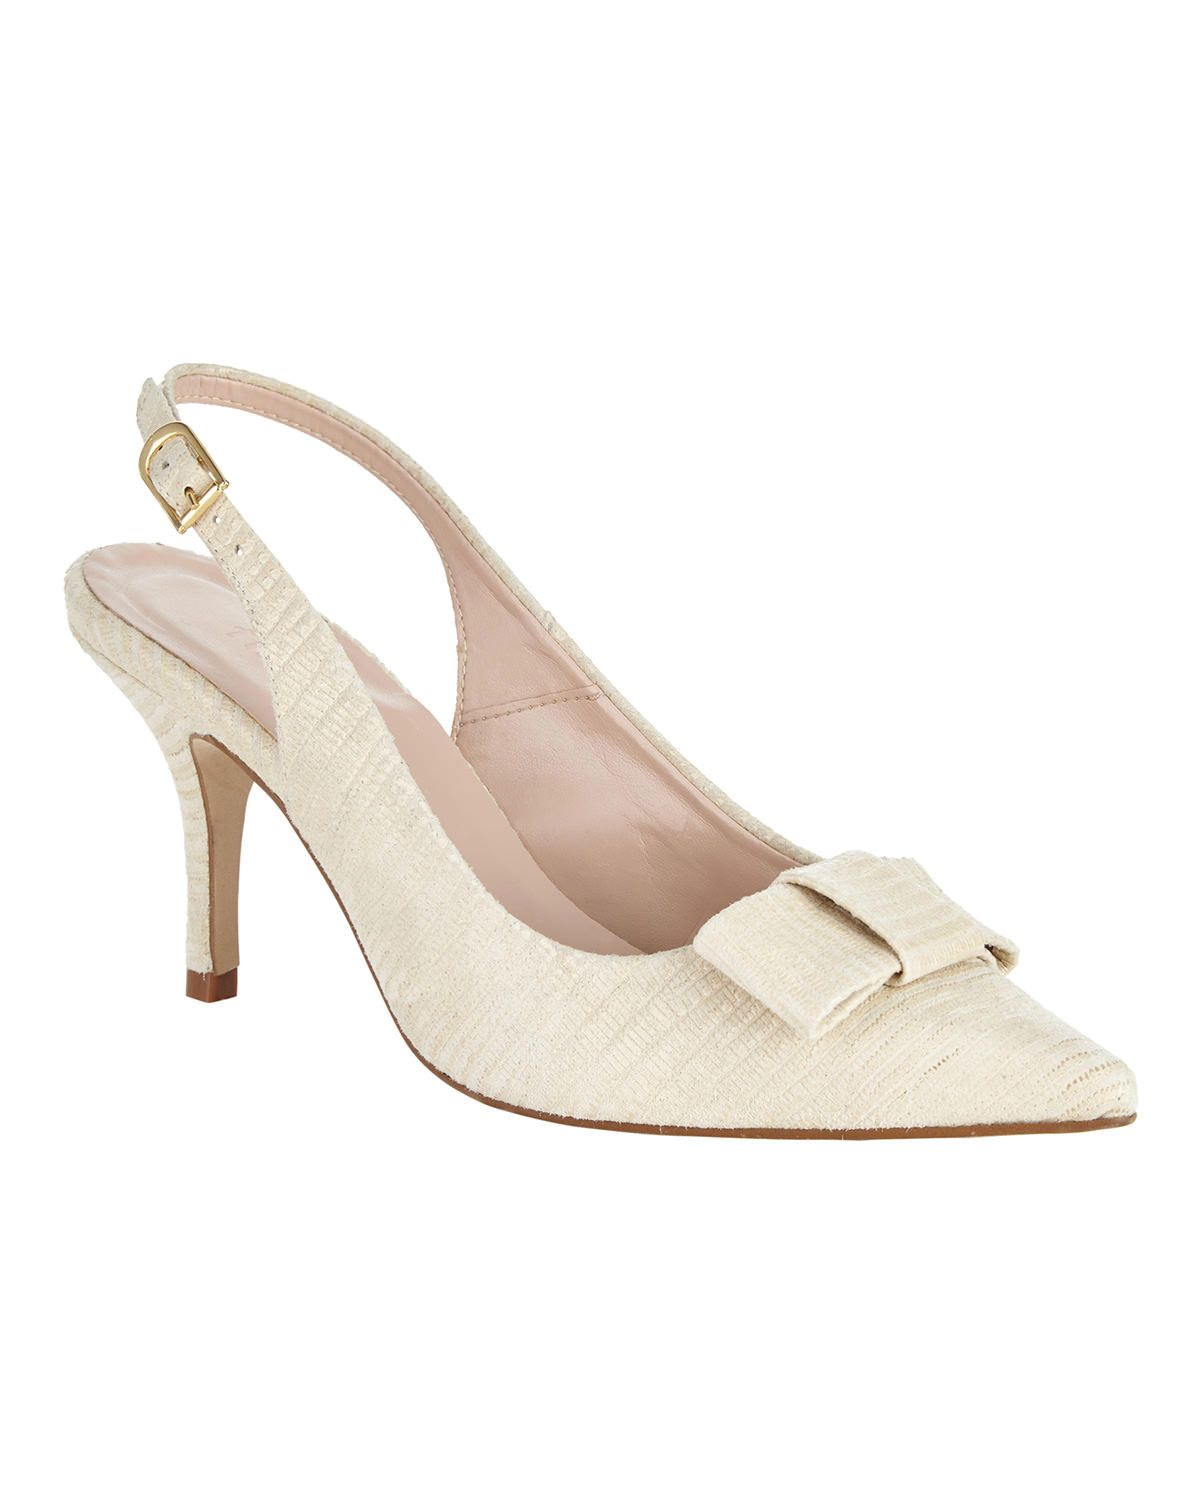 ac3eee24b9c Phase Eight Sammy Leather Bow Sling Back Shoes Cream Buy Shoes